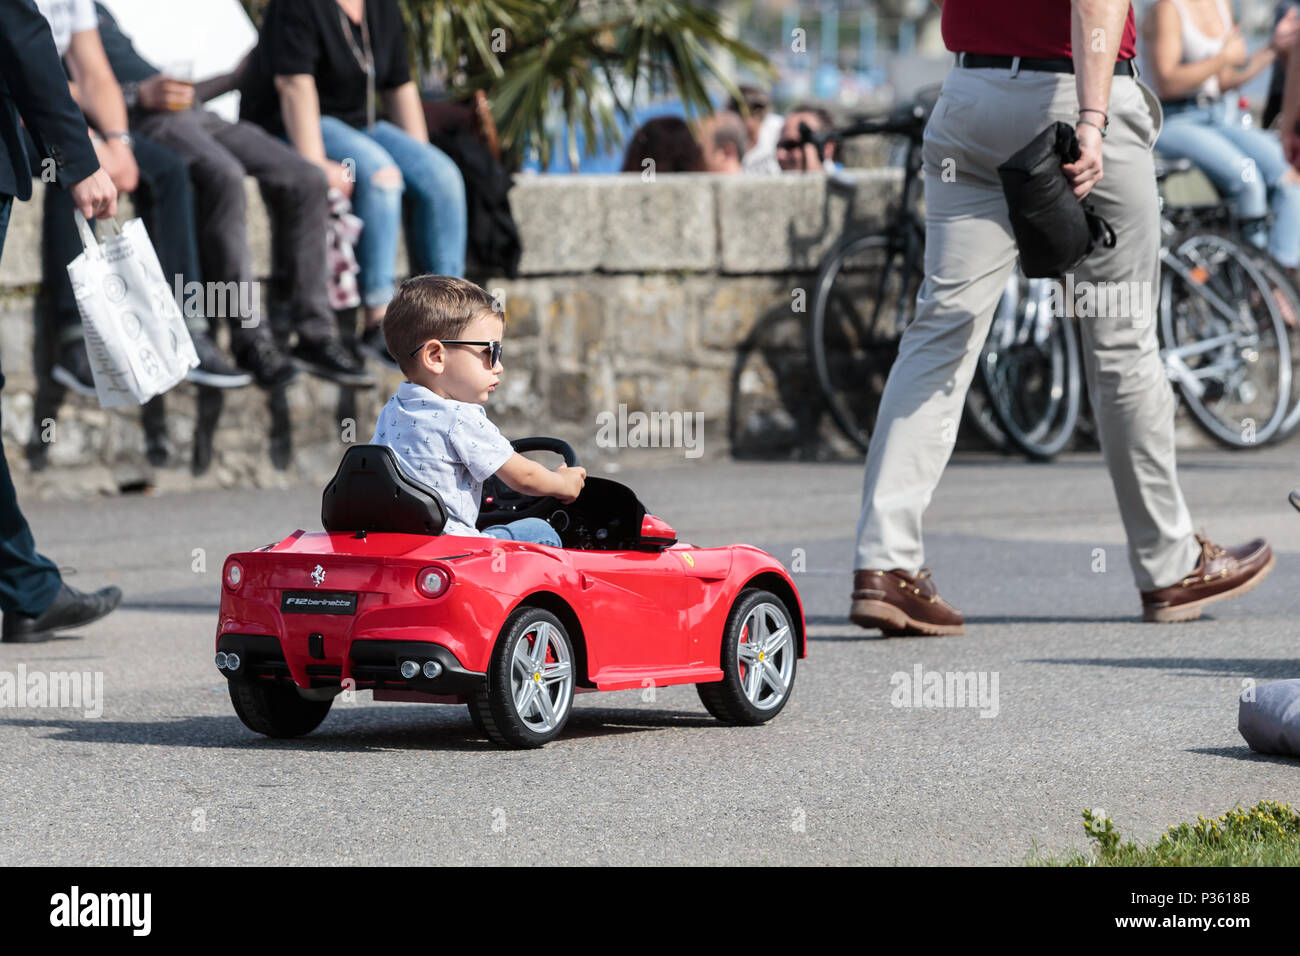 A little boy rolling in a small red car in the middle of the passers-by. This little car is a toy. Stock Photo